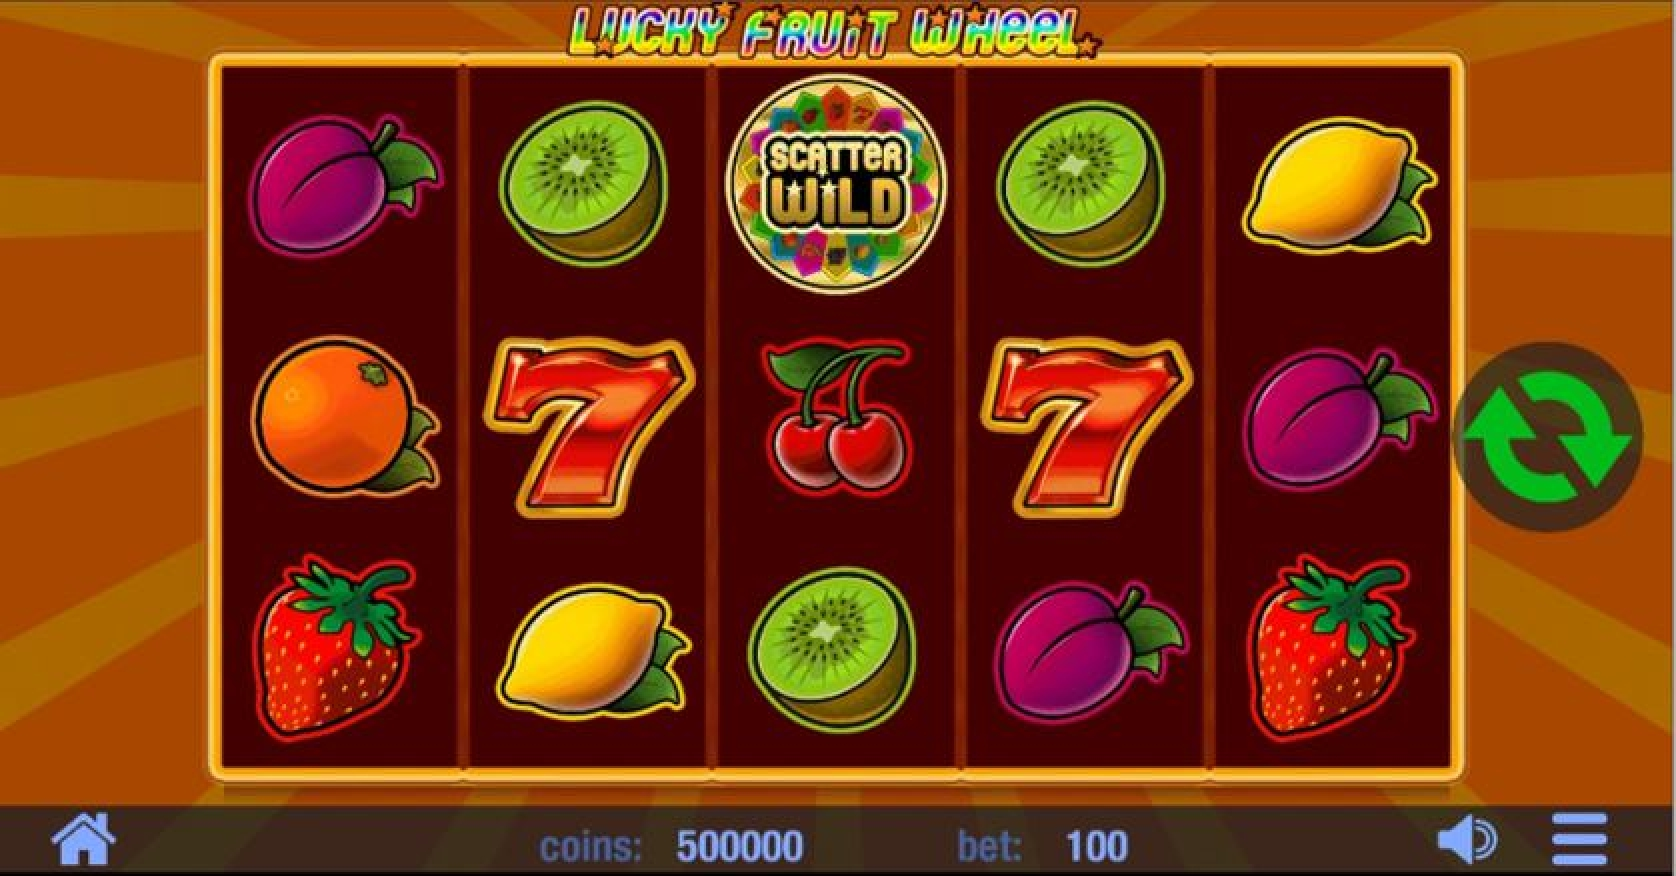 Win Money in Lucky Fruit Wheel Free Slot Game by Swintt